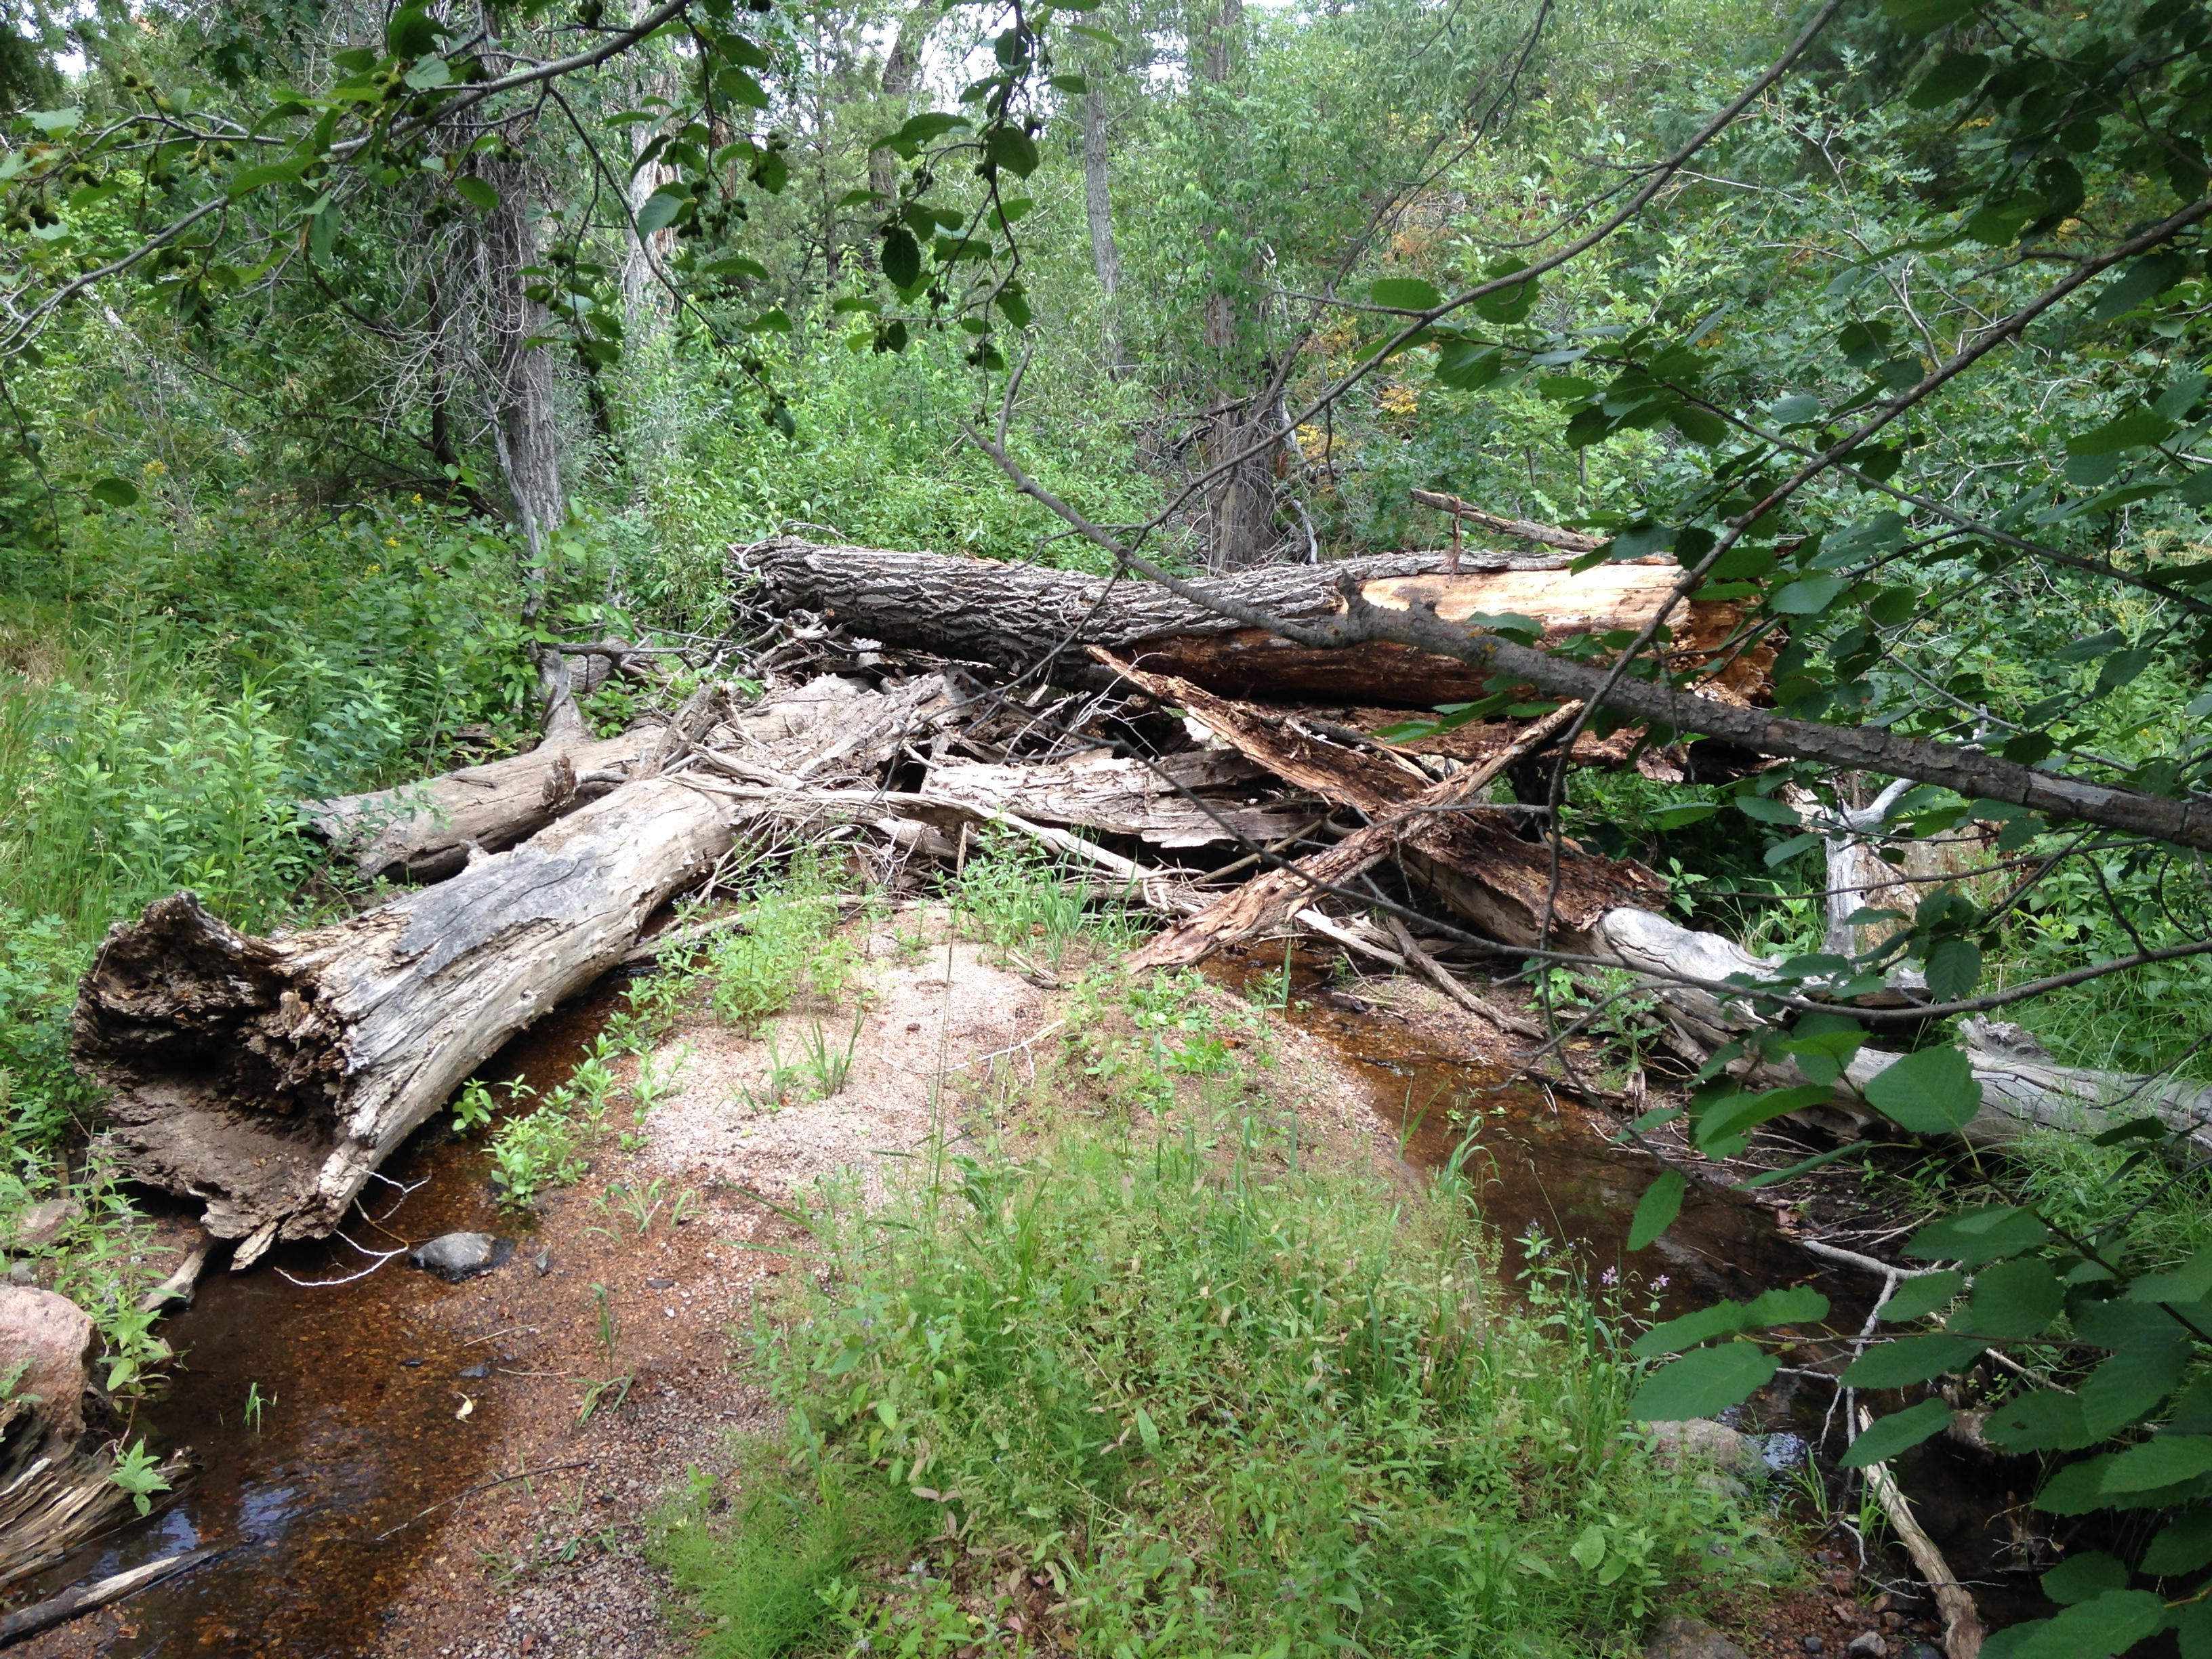 Large woody debris in a creek, surrounded by dense vegetation